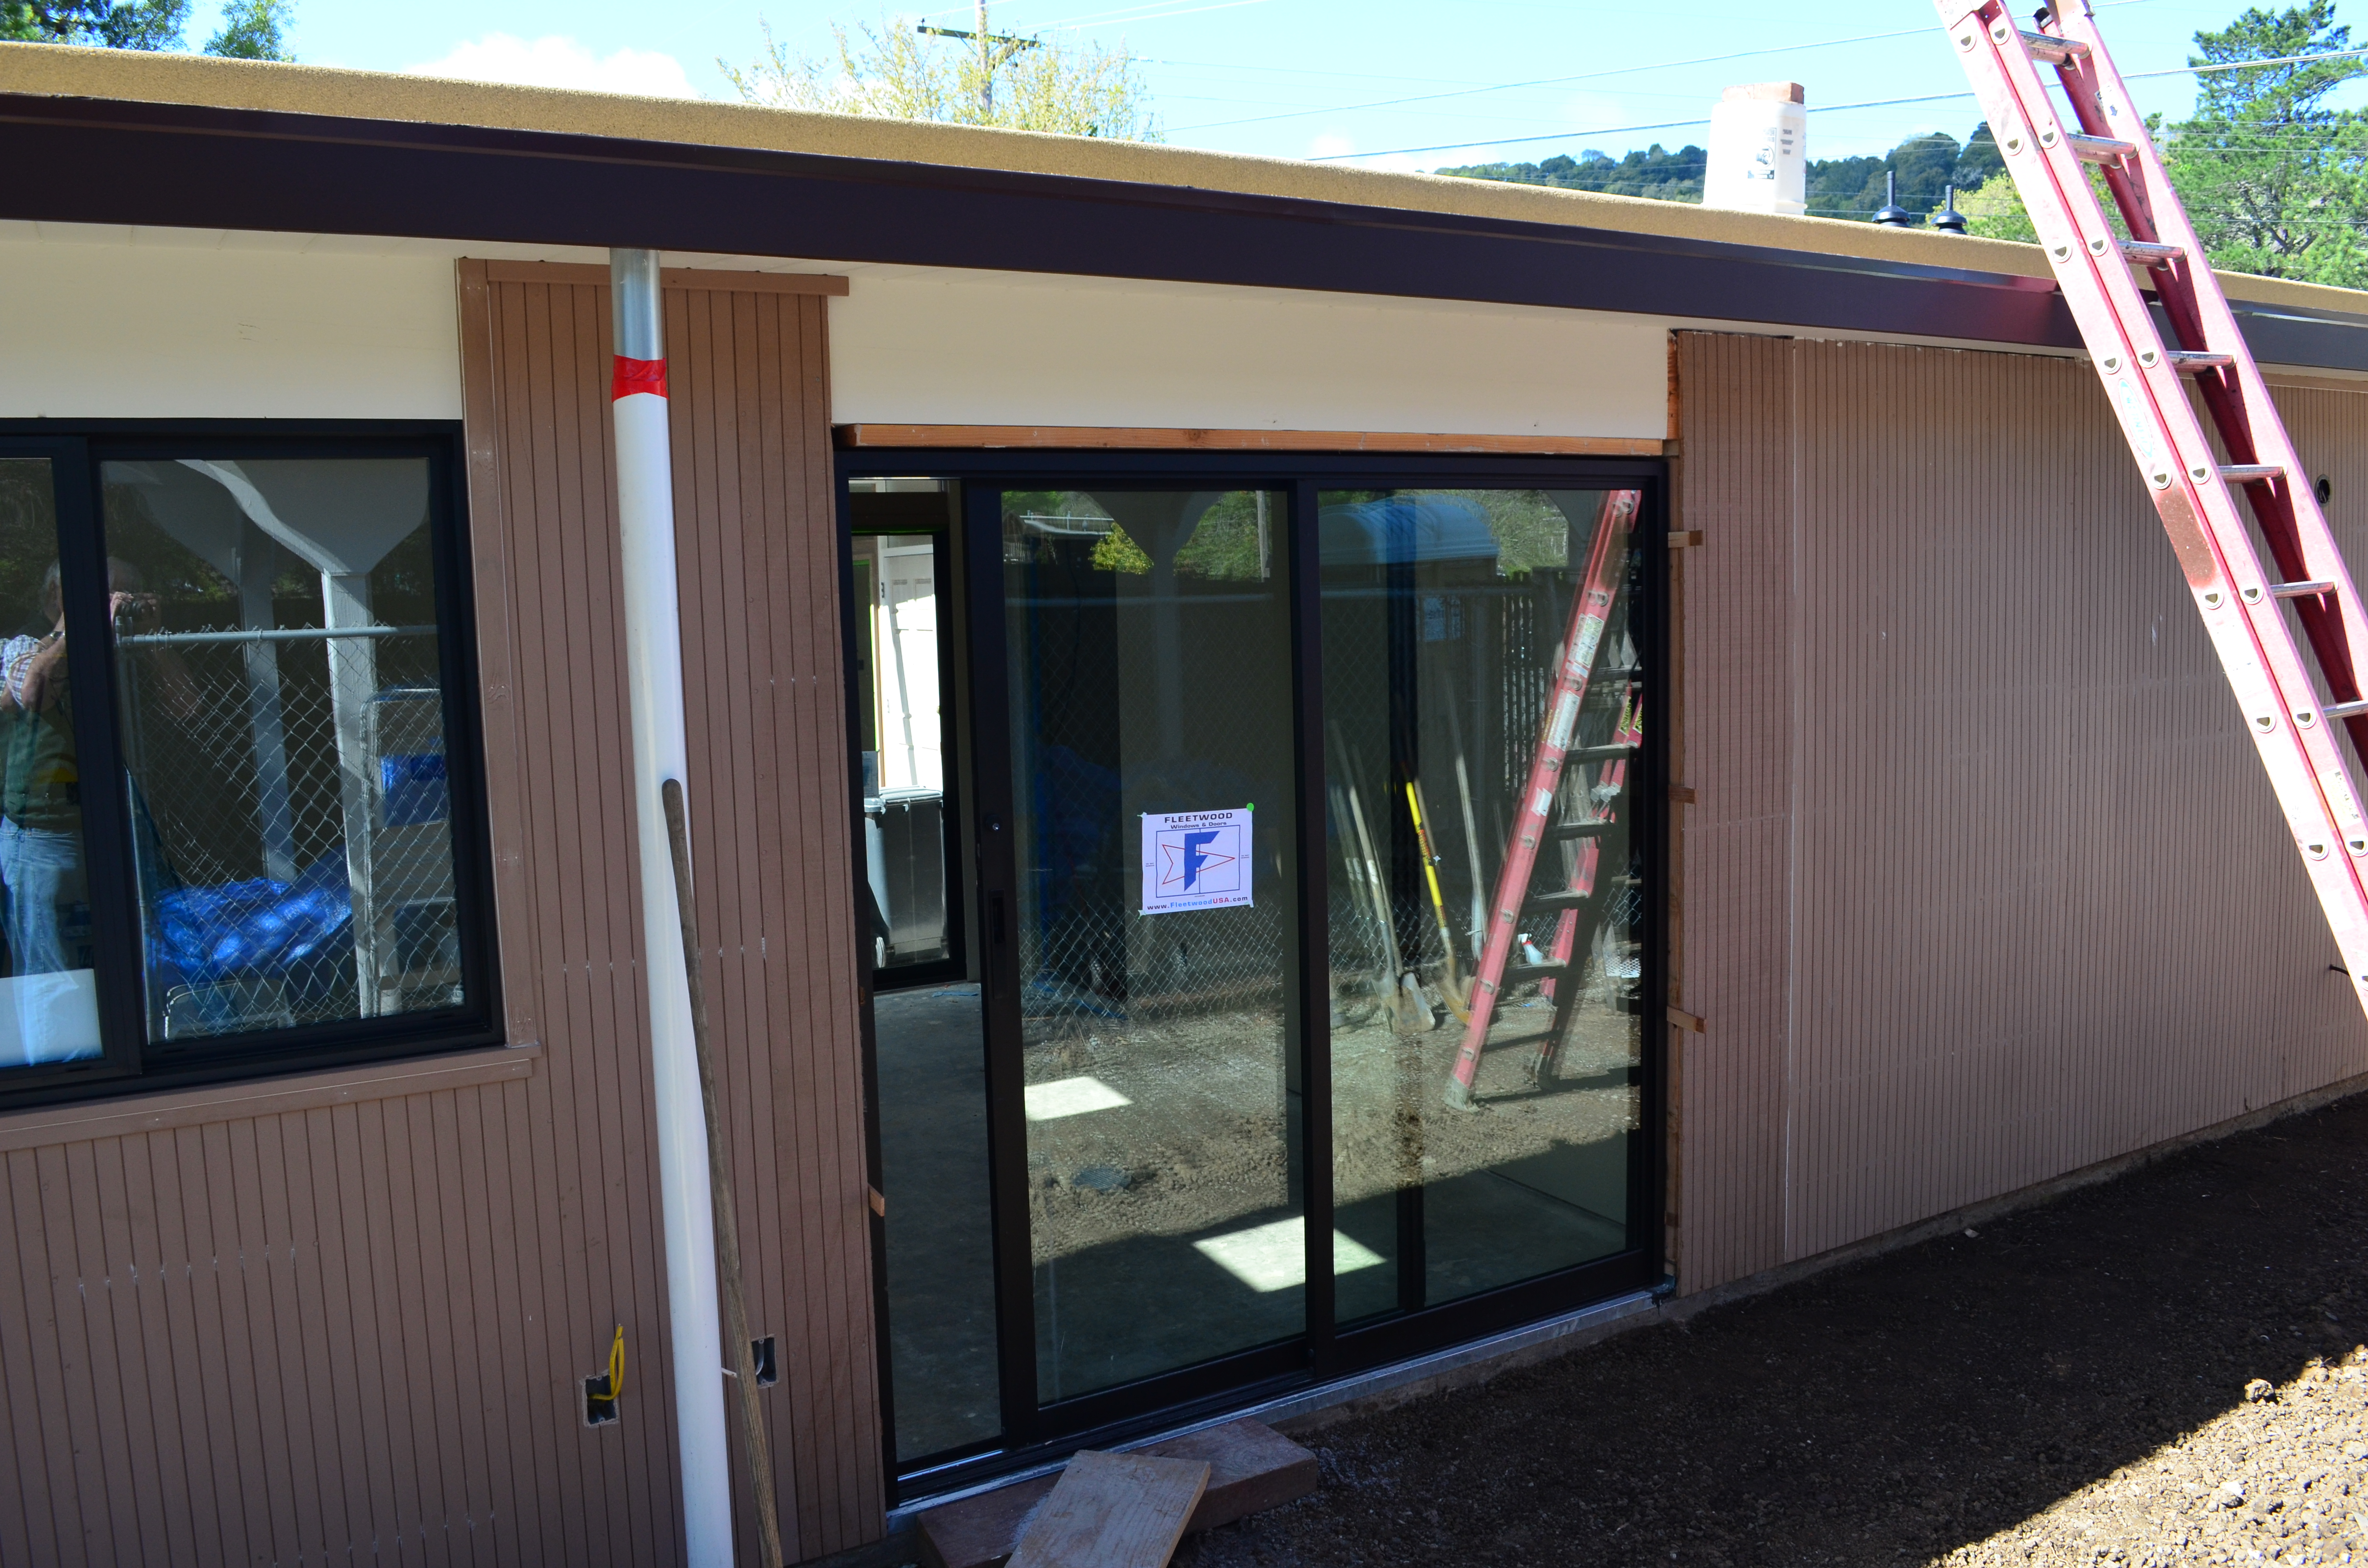 Upgrading An Eichler With Energy Efficient Windows And